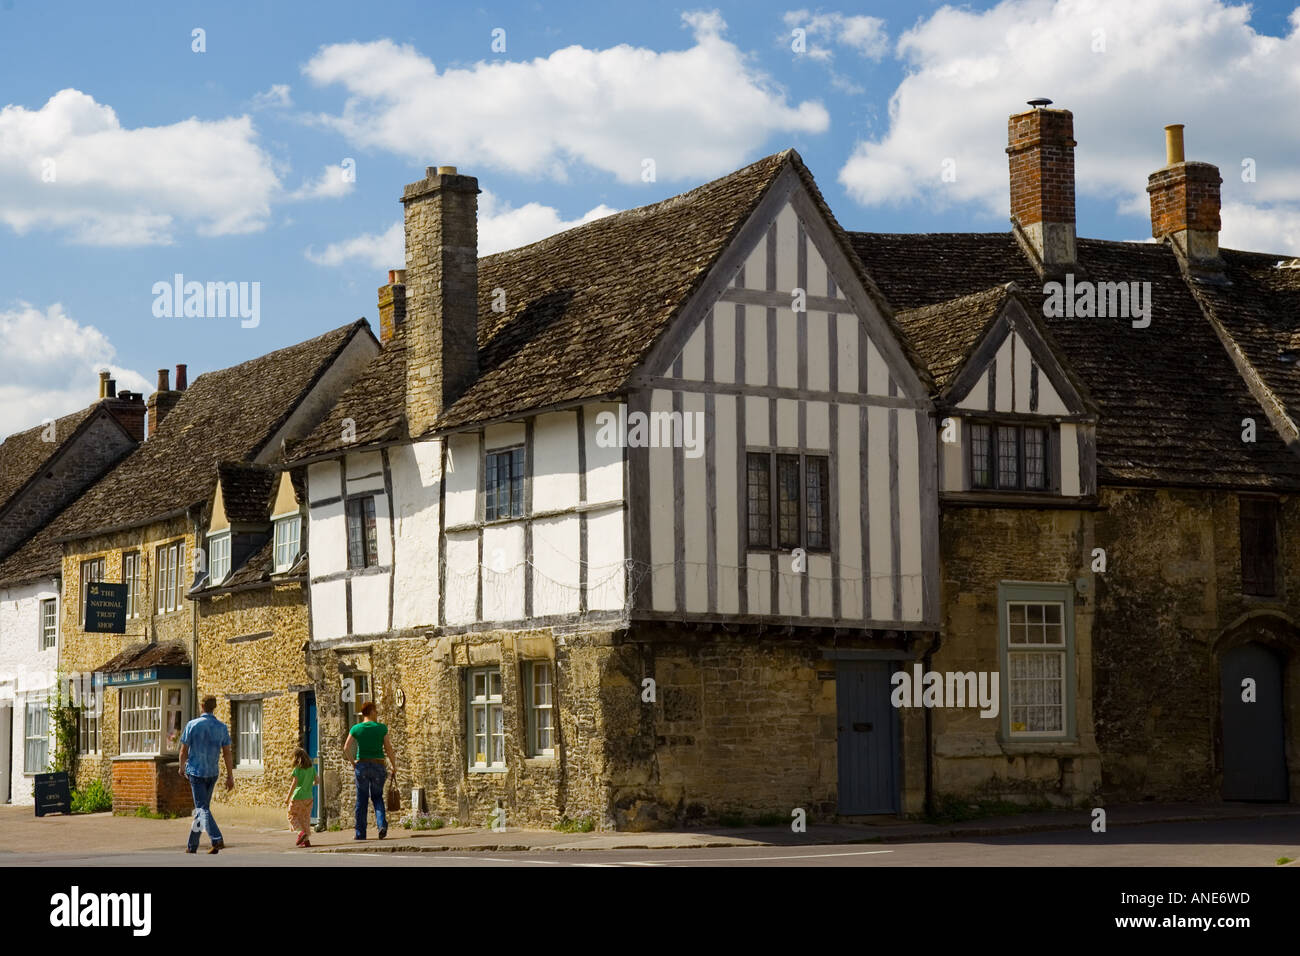 tudor style timber frame houses in laycock wiltshire united stock photo tudor style timber frame houses in laycock wiltshire united kingdom